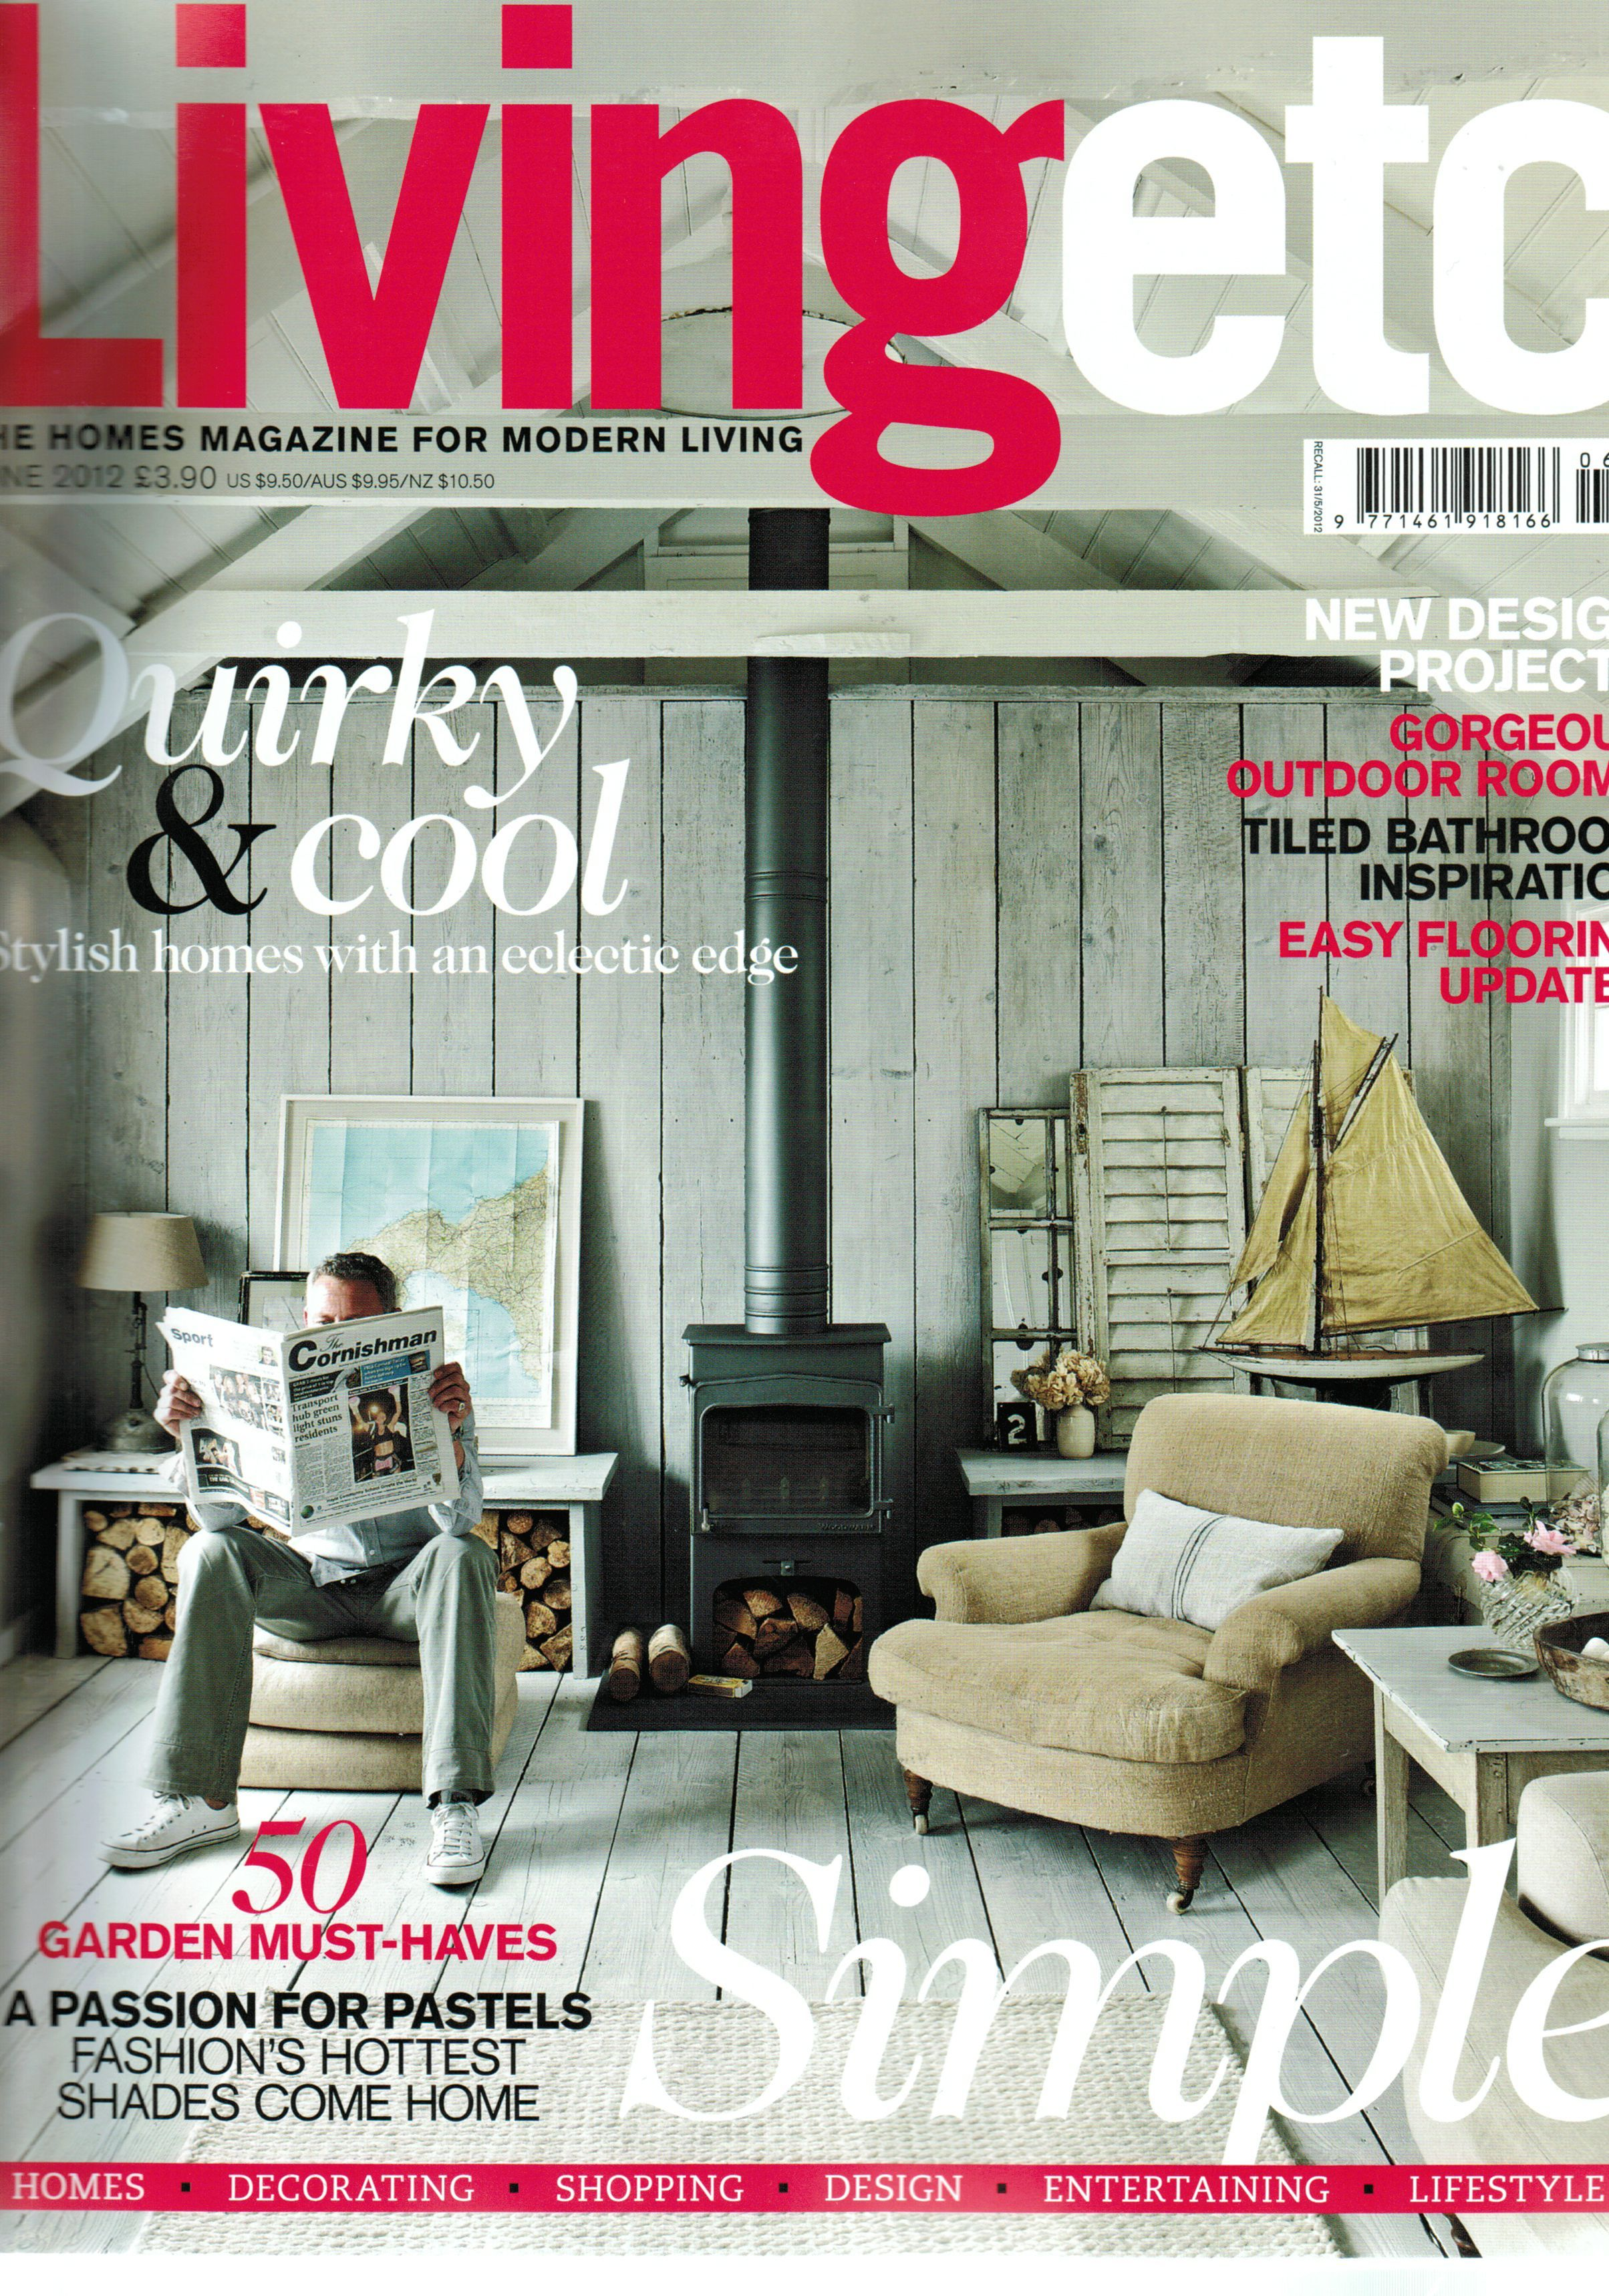 Designer Sofas And Curtains Tottenham Court Road Living Etc Magazine June 2012 Featured Raft 39s Flagship